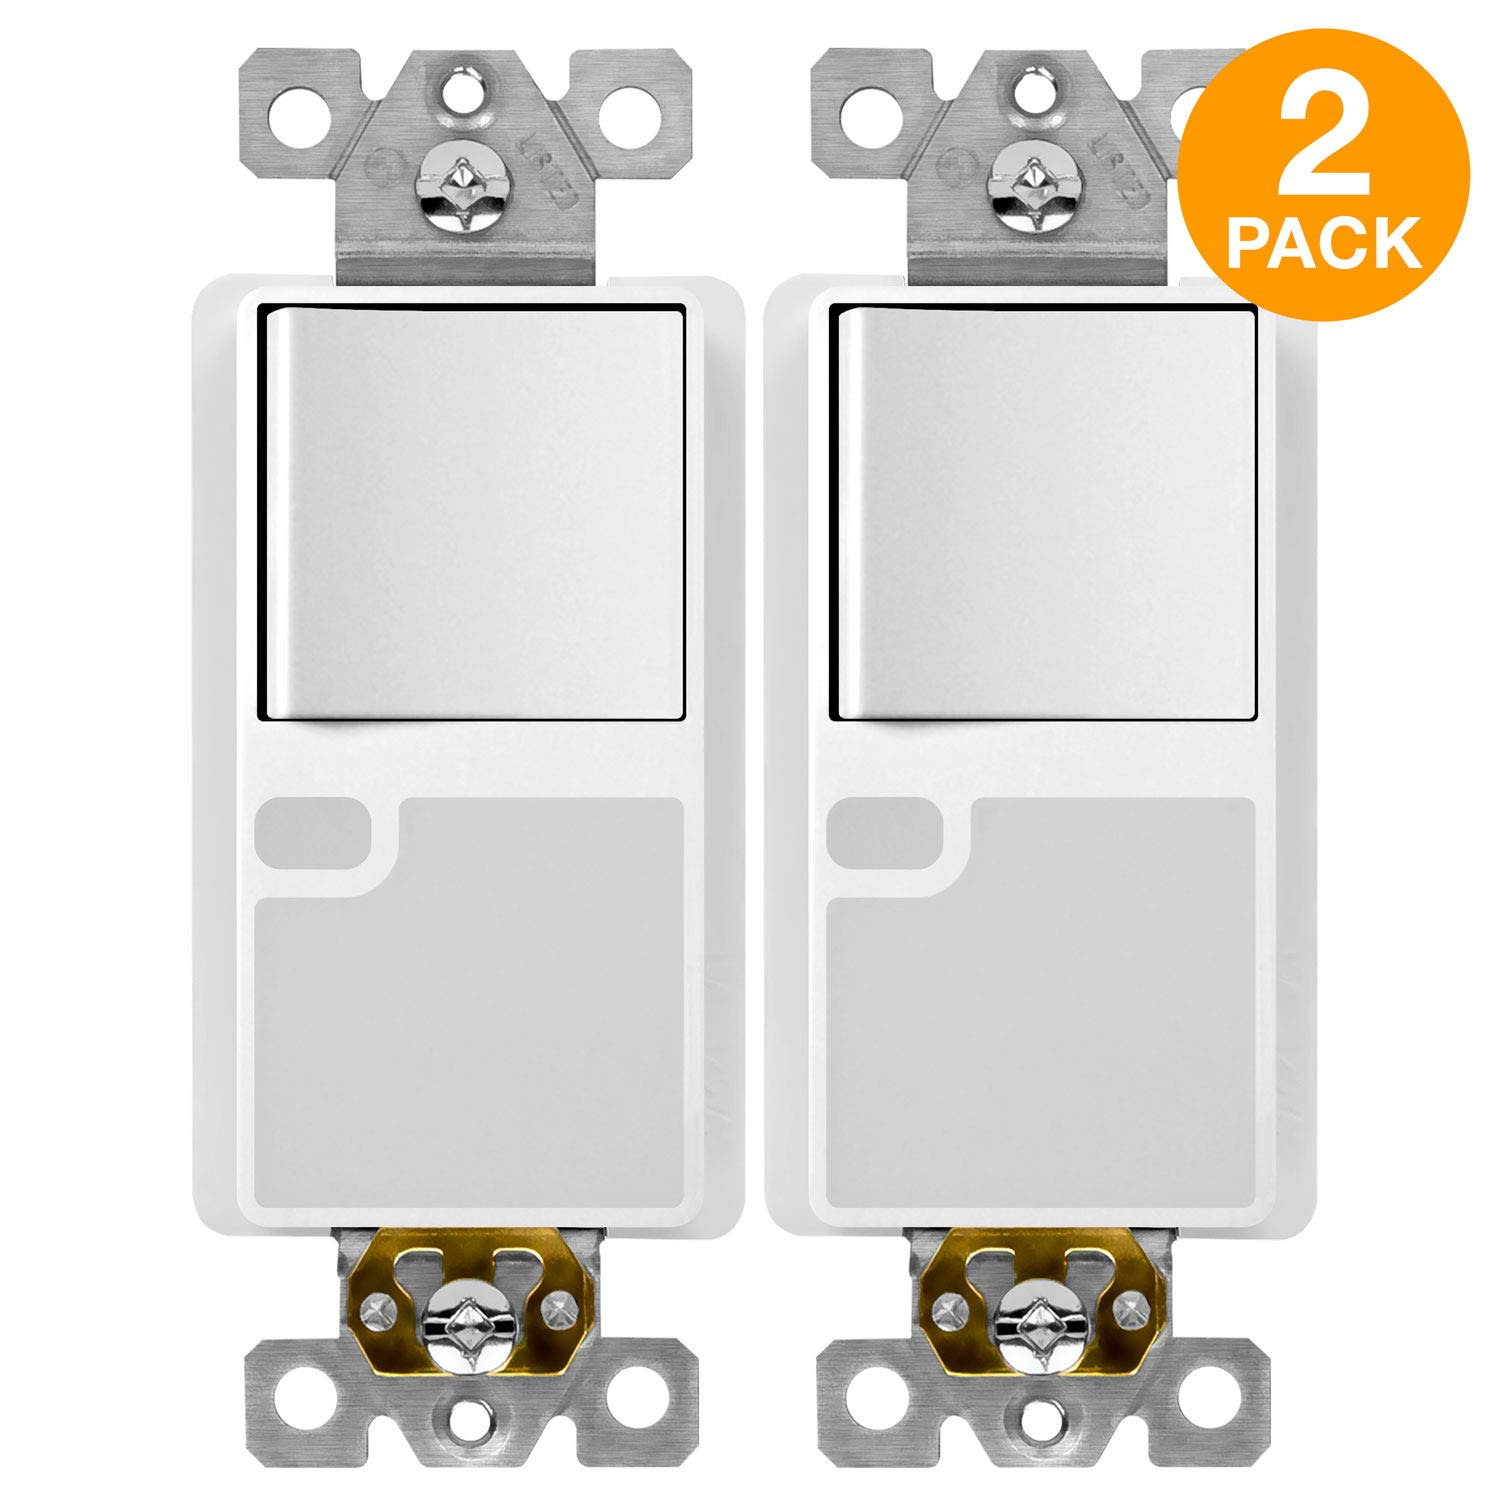 TOPGREENER Combination Decorator Light Switch LED Guide Light with Automatic Ambient Light Sensor, 120VAC/15A Single Pole Neutral Wire Required, Screwless Wall Plate, White (2 Pack) TG115SGL-2PCS